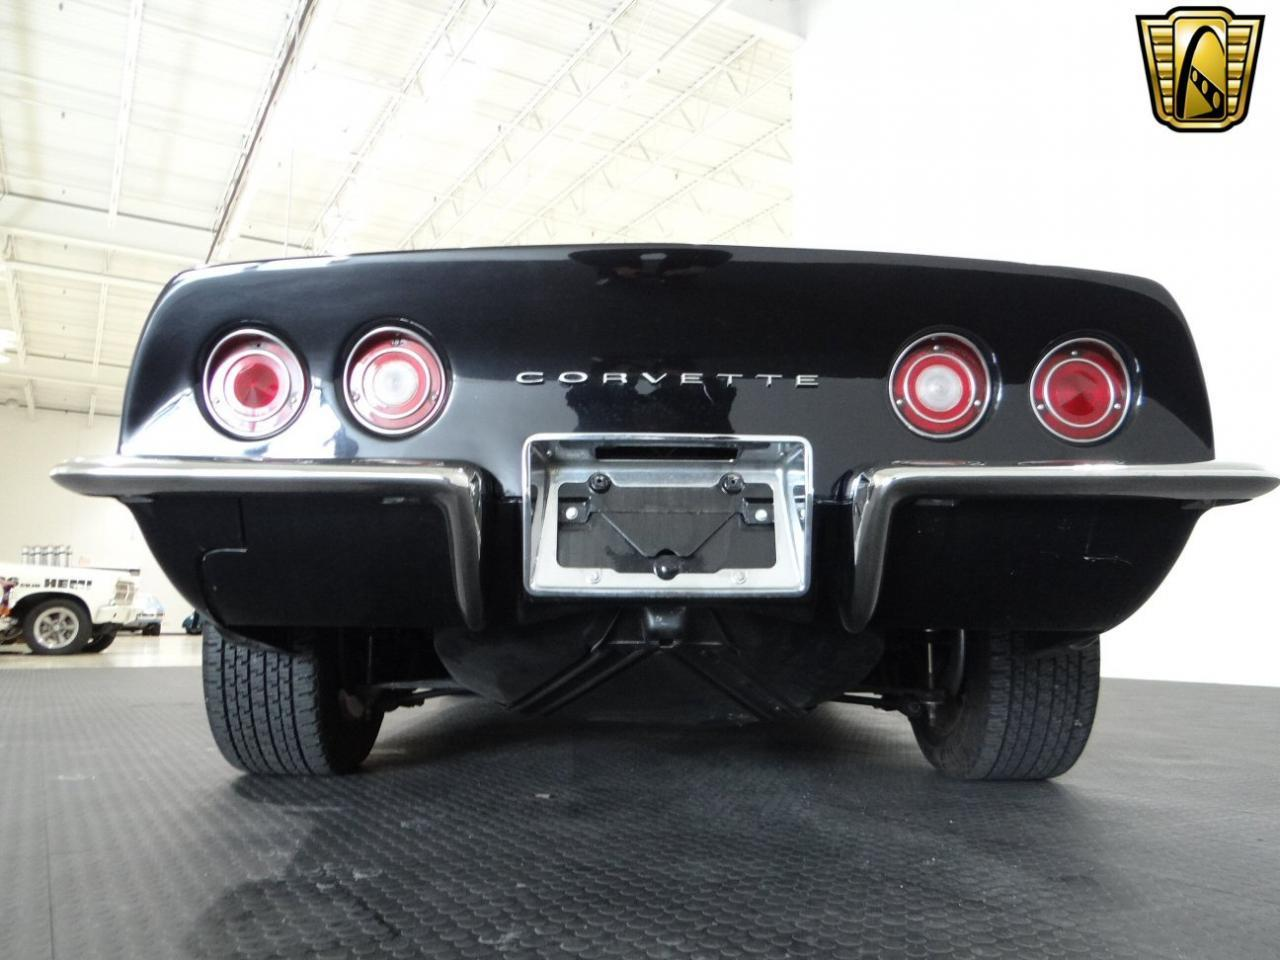 Large Picture of Classic 1971 Chevrolet Corvette located in Crete Illinois Offered by Gateway Classic Cars - Chicago - KF3X